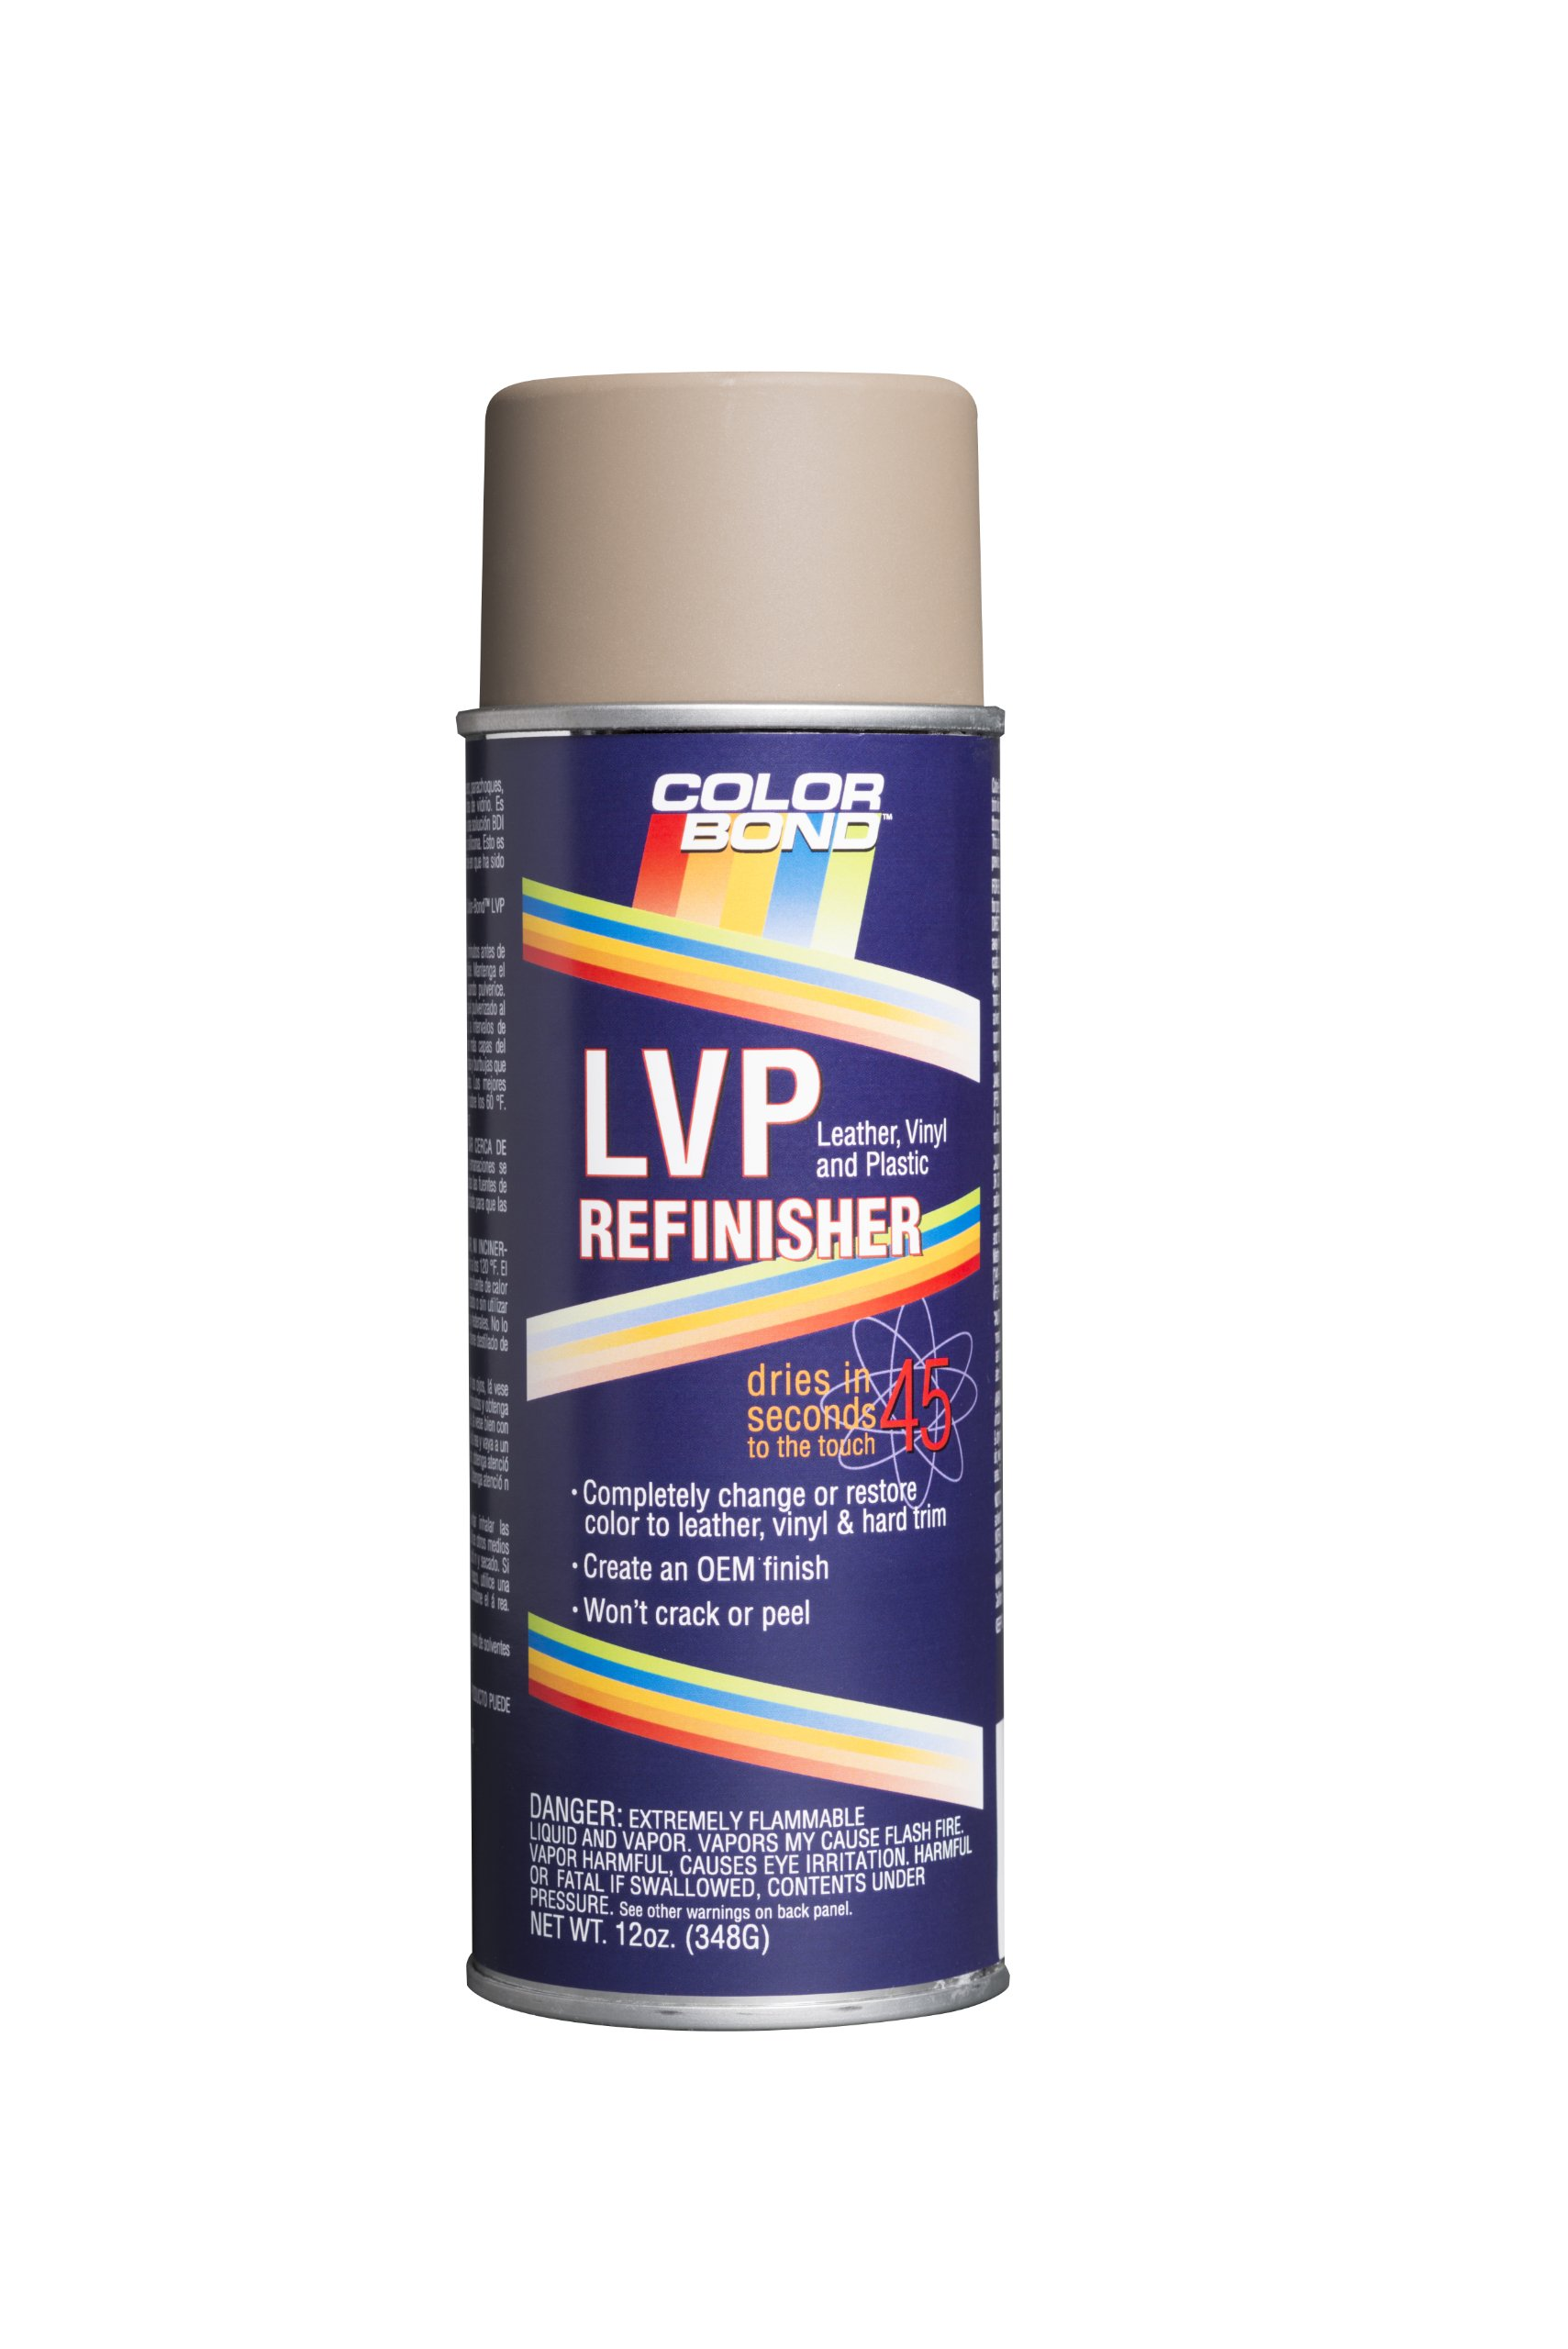 Colorbond (1874 GM Escalade Platinum LVP Leather, Vinyl & Hard Plastic Refinisher Spray Paint - 12 oz.